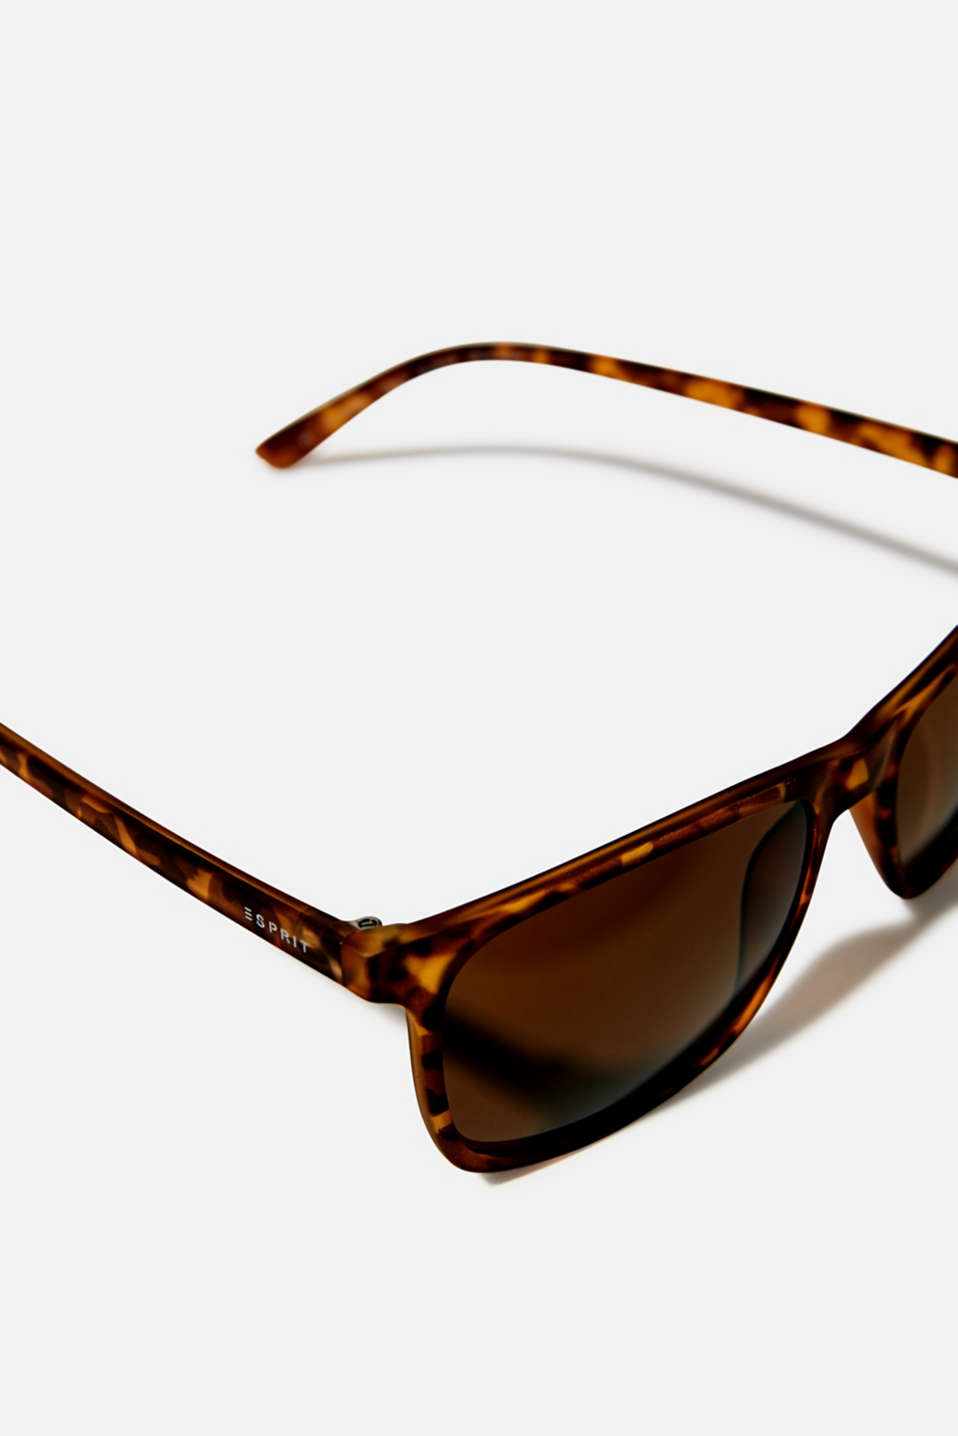 Lightweight acetate sunglasses, LCHAVANNA, detail image number 1